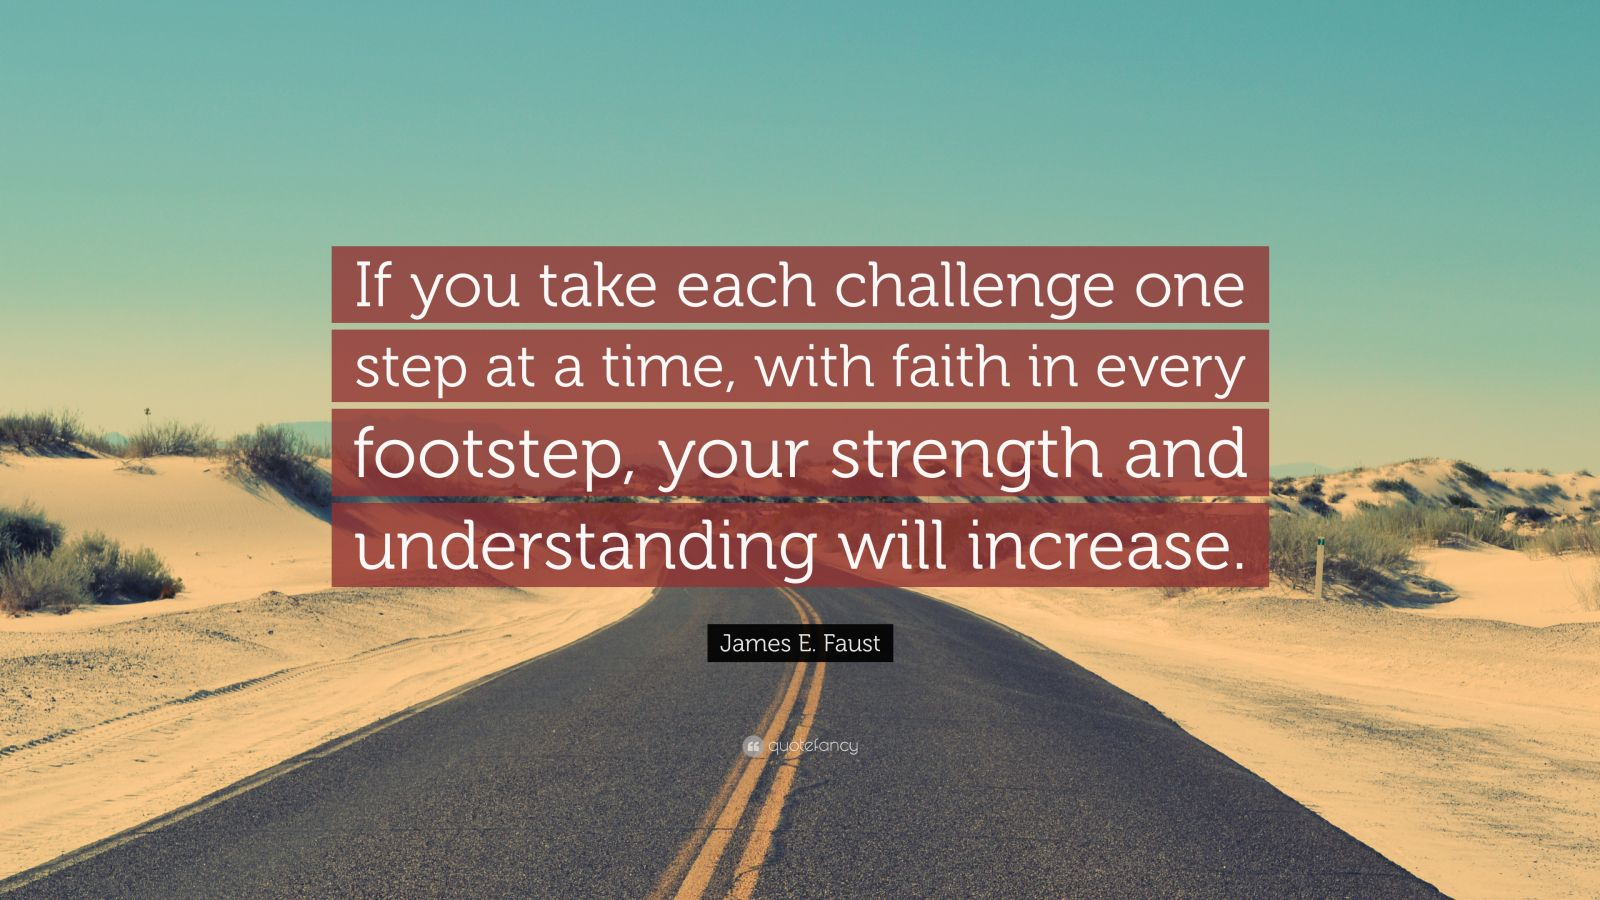 """James E. Faust Quote: """"If you take each challenge one step at a time, with faith in every footstep, your strength and understanding will increase."""""""